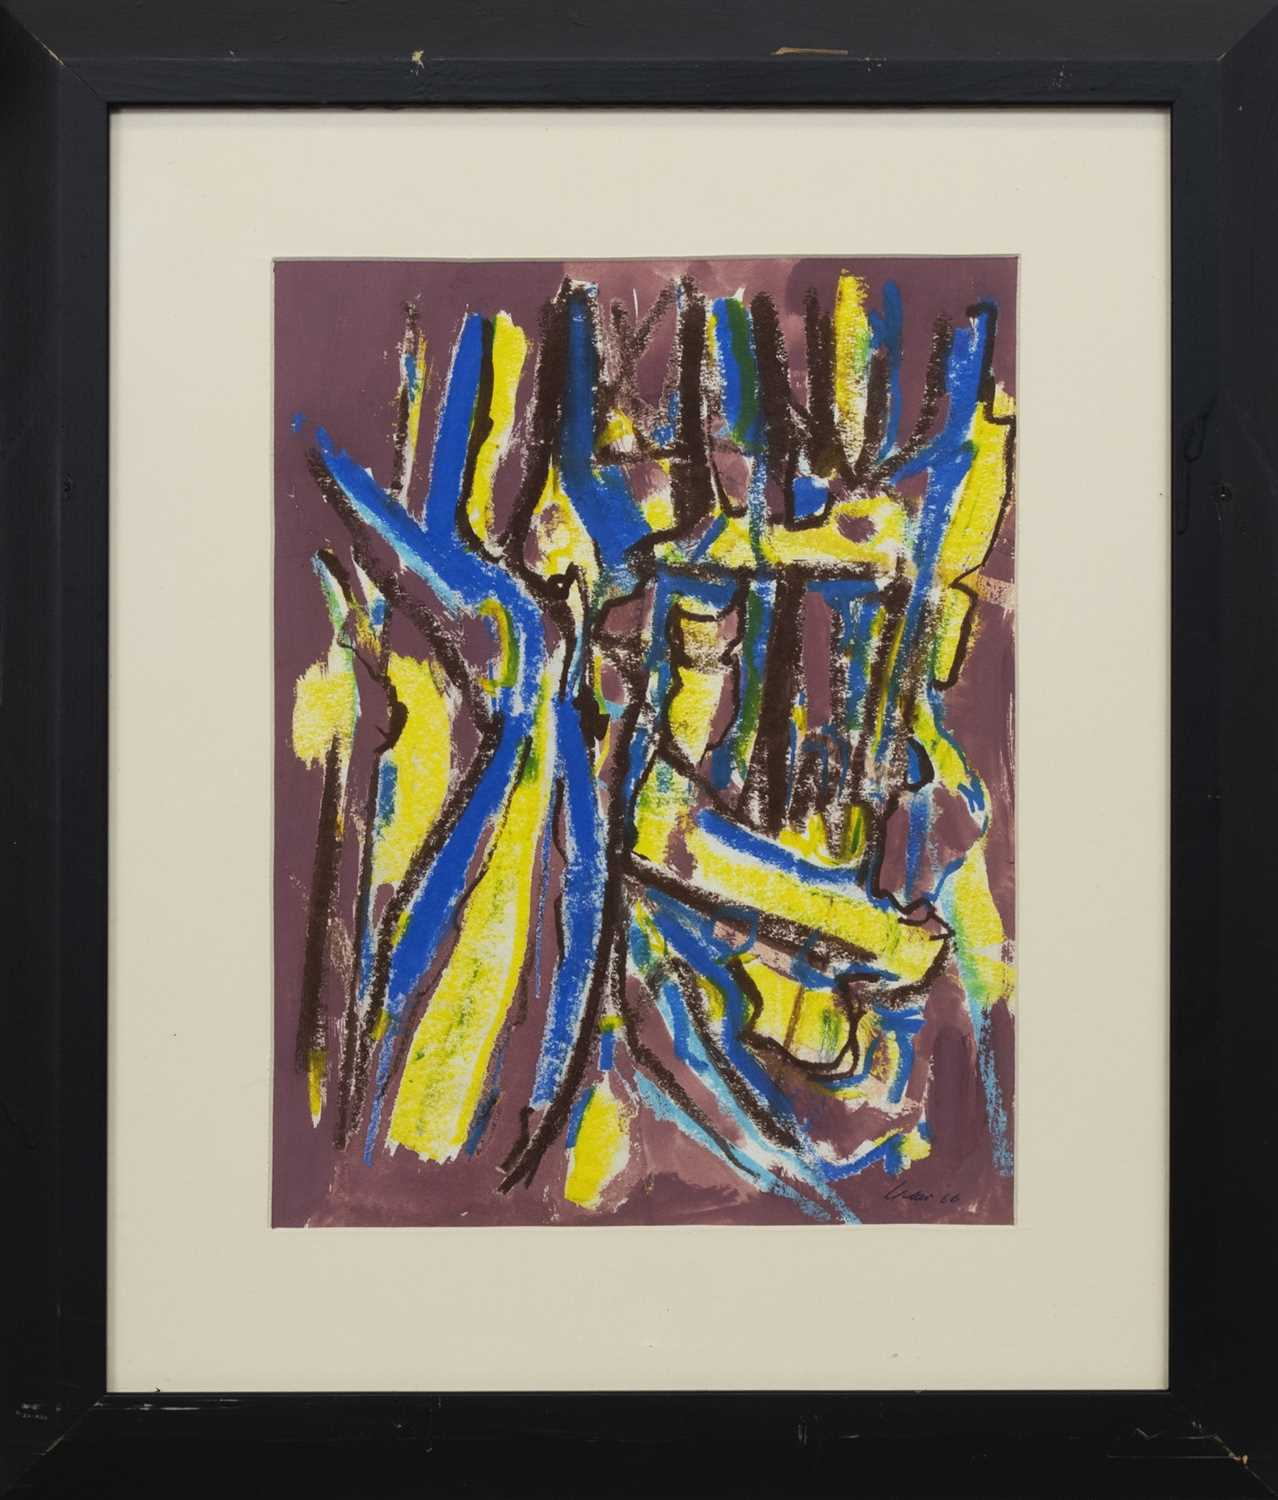 Lot 542 - BLUE-YELLOW, A PASTEL AND ACRYLIC BY WILLIAM GEAR